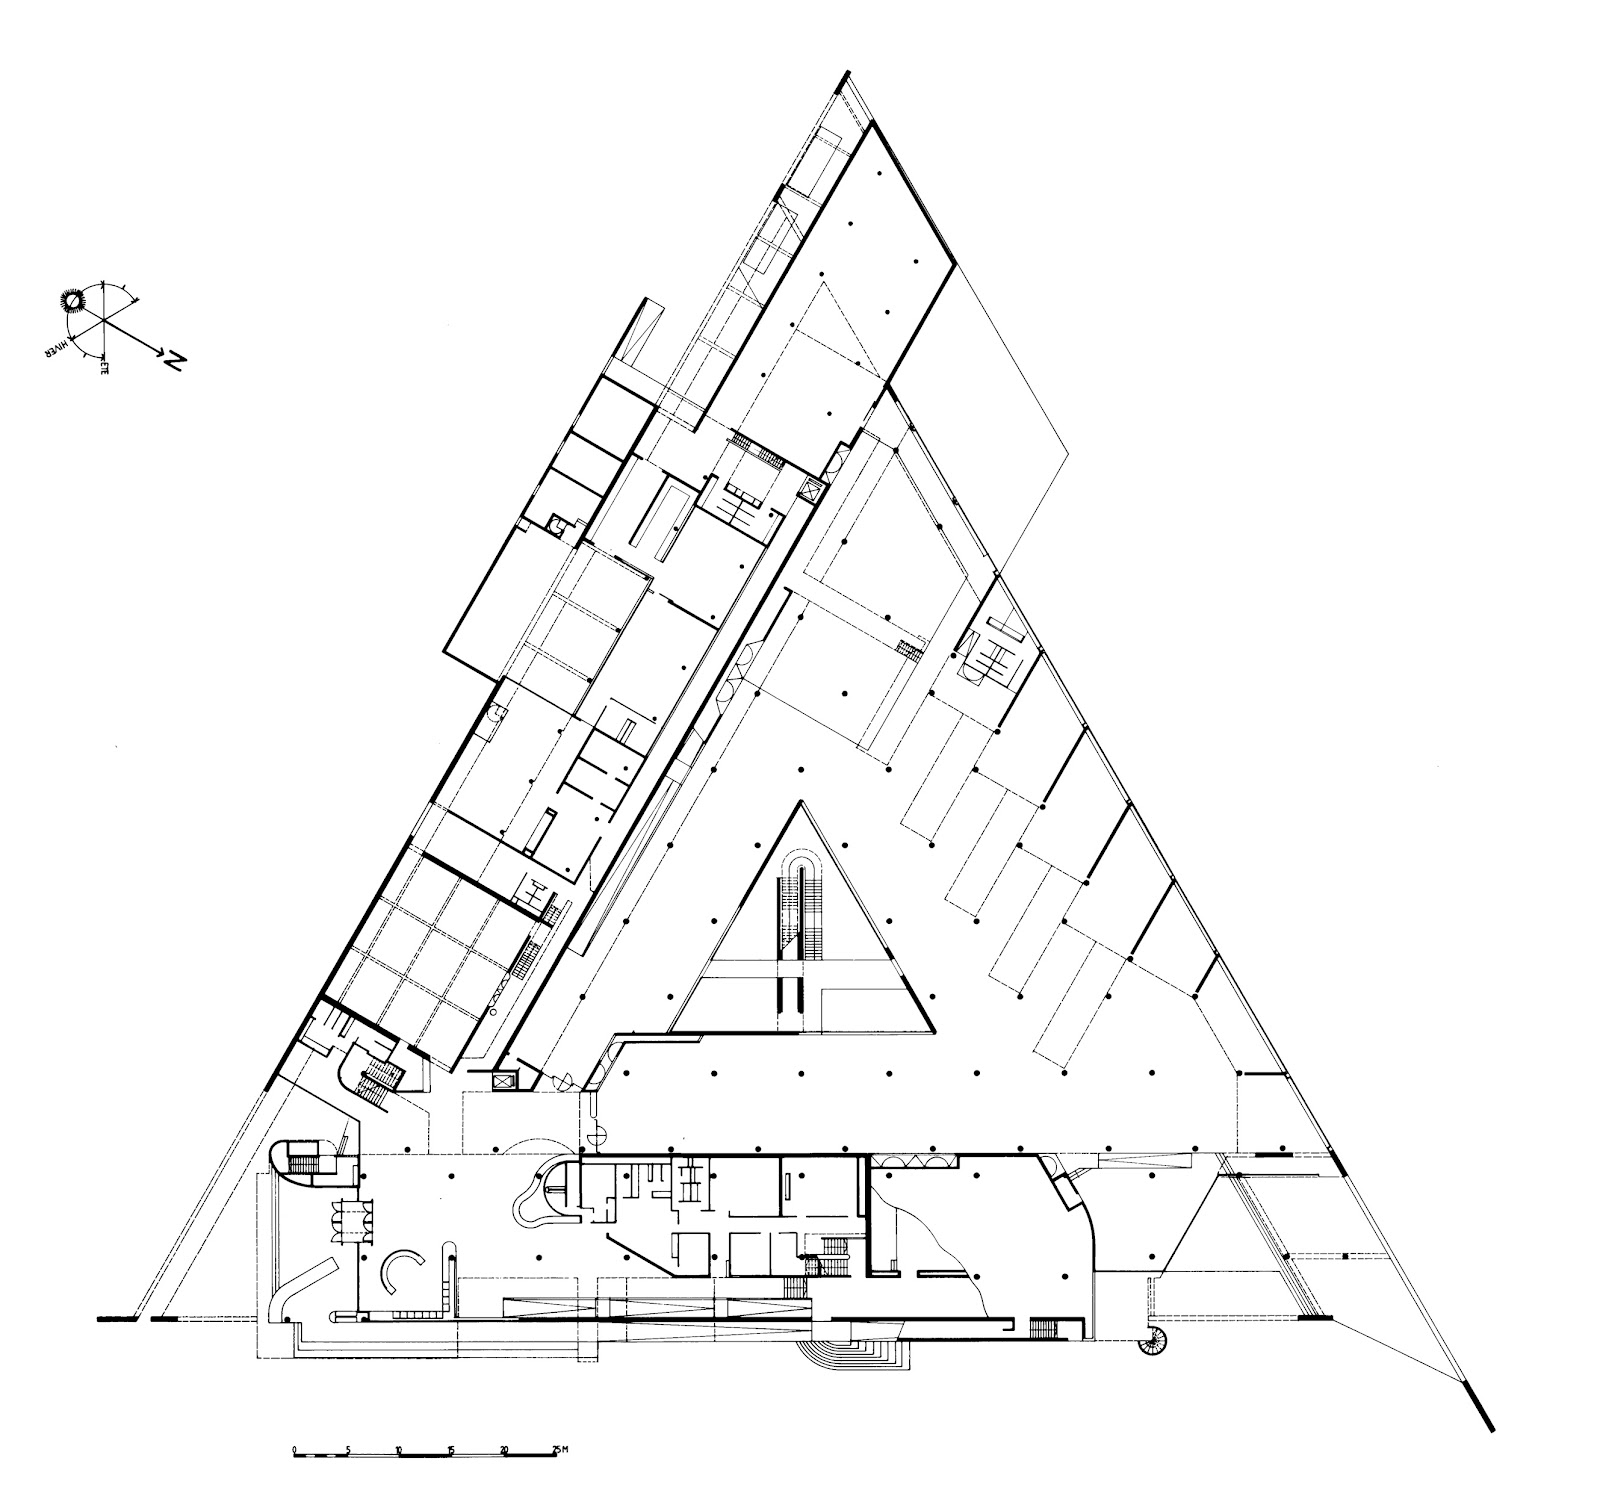 Henri ciriani musee d 39 arles for Triangle concept architecture